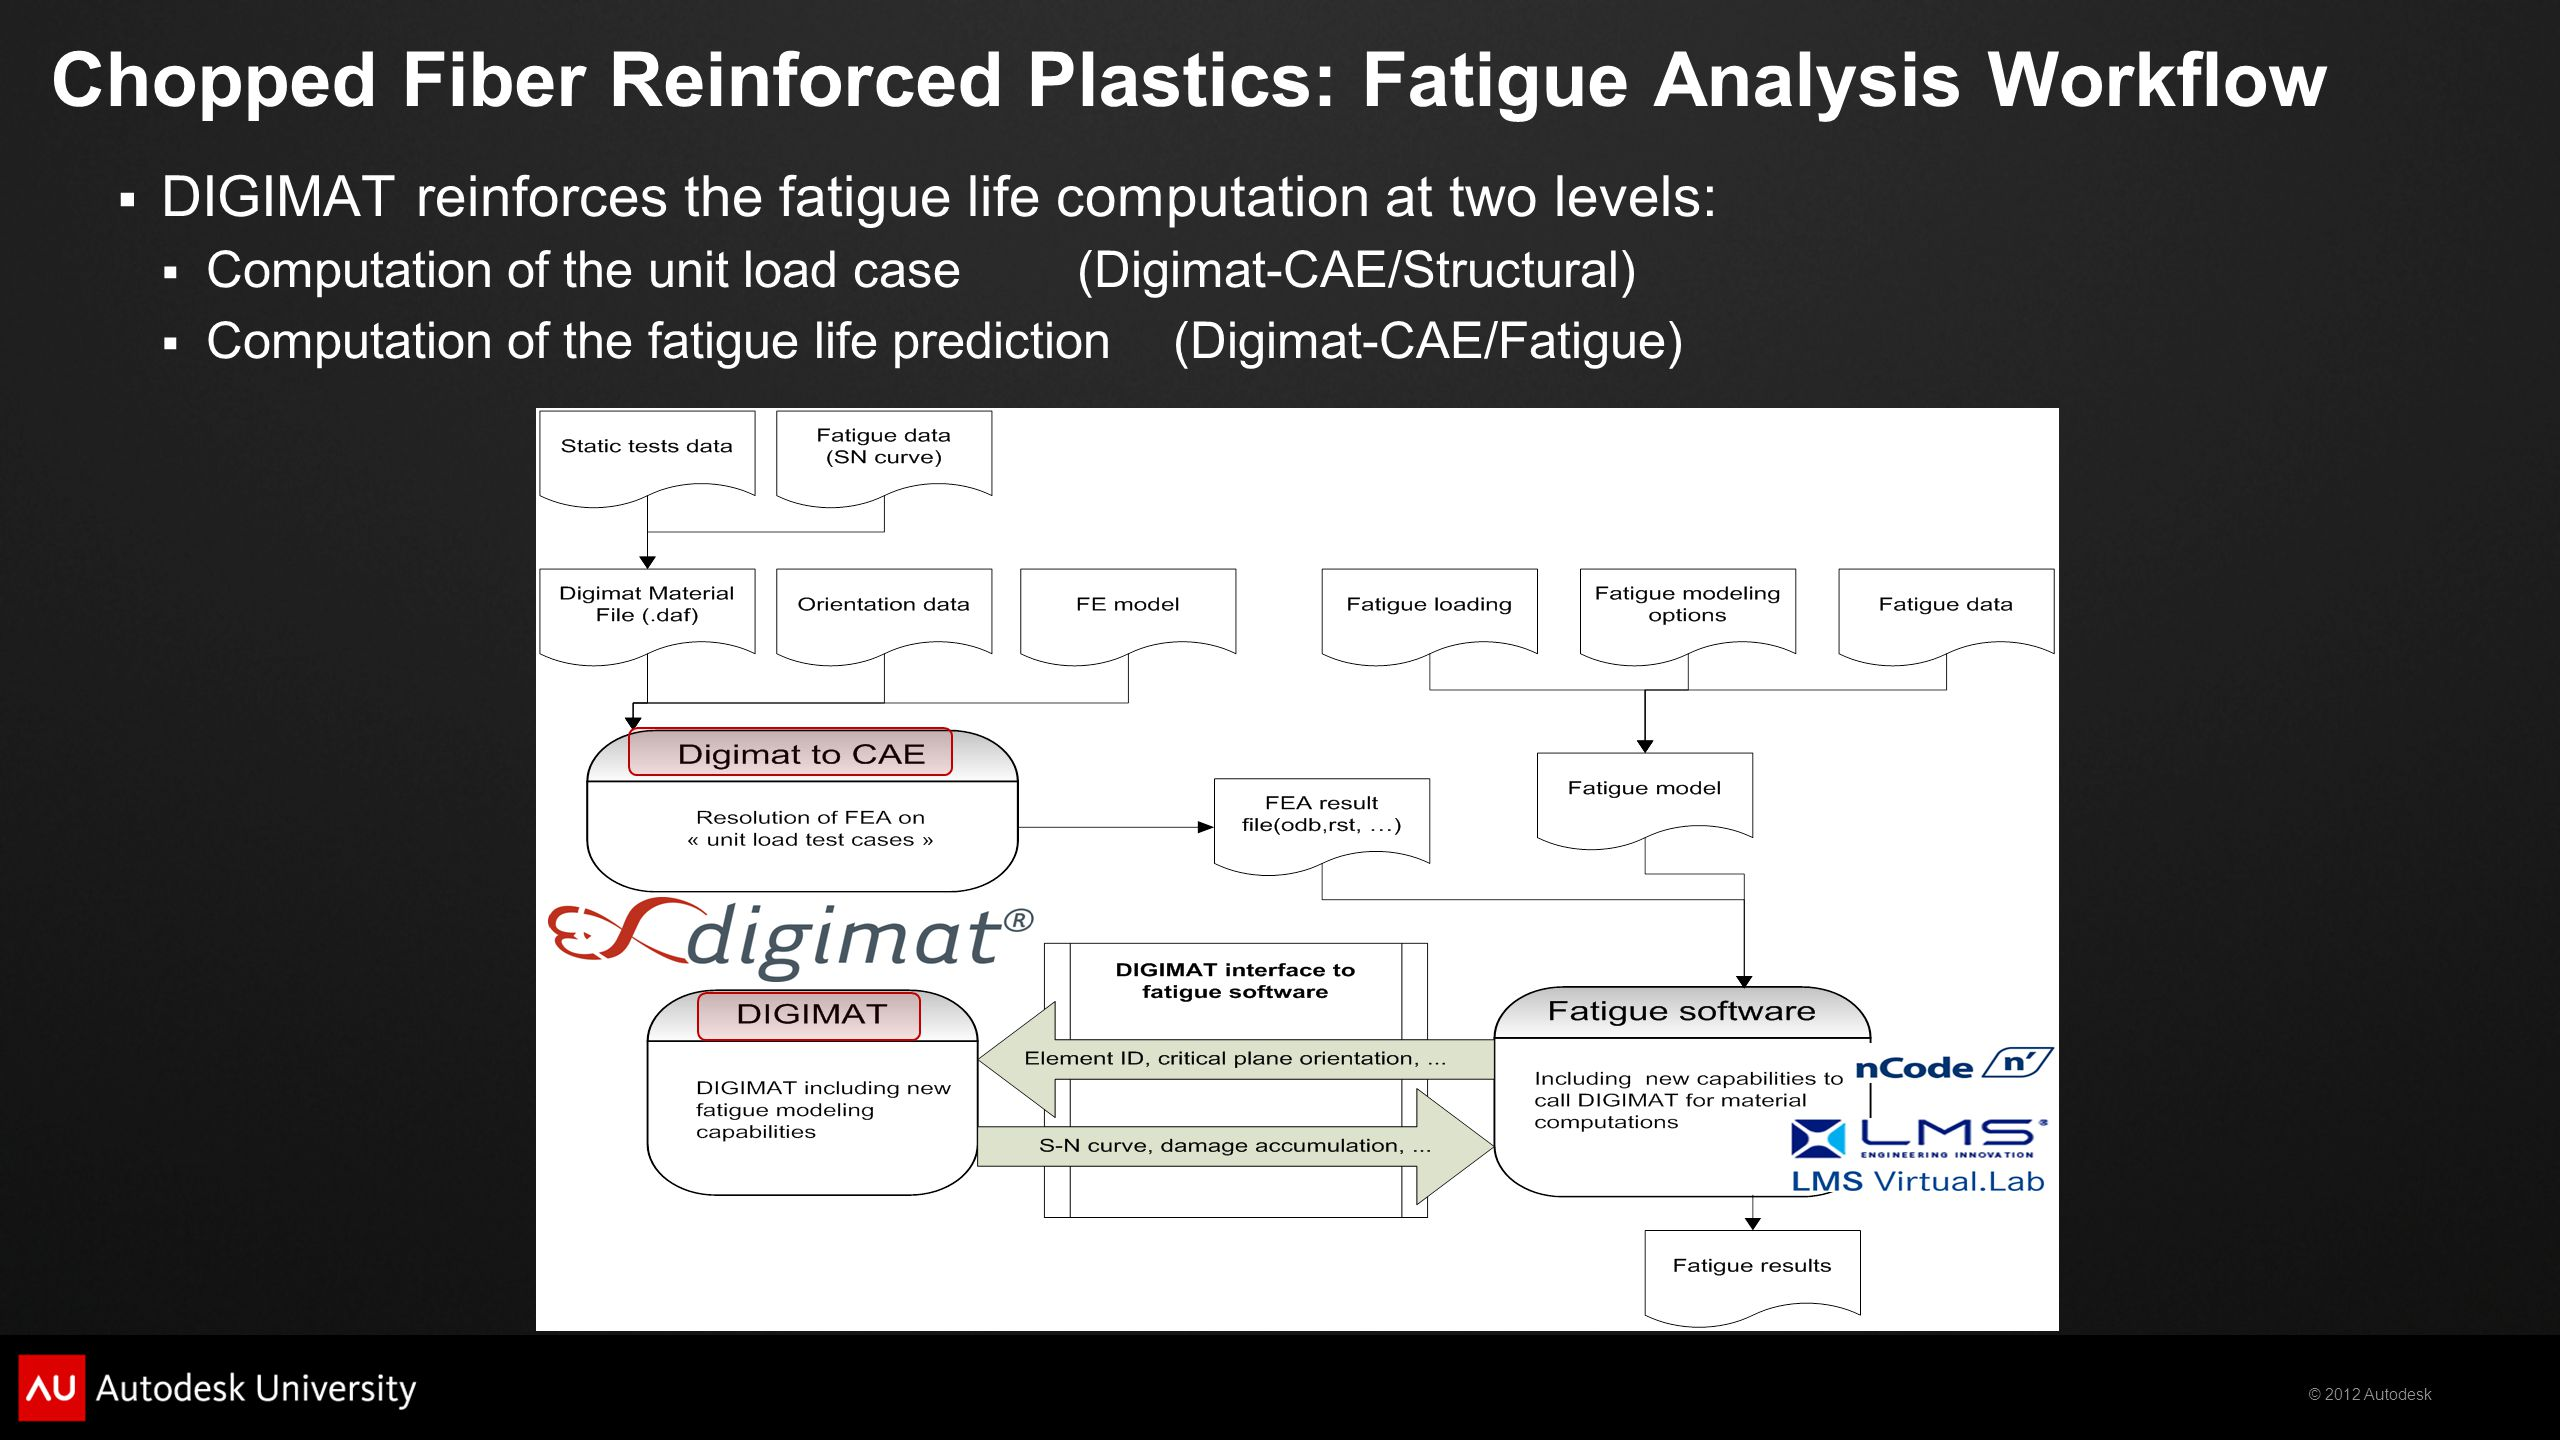 Chopped Fiber Reinforced Plastics: Fatigue Analysis Workflow